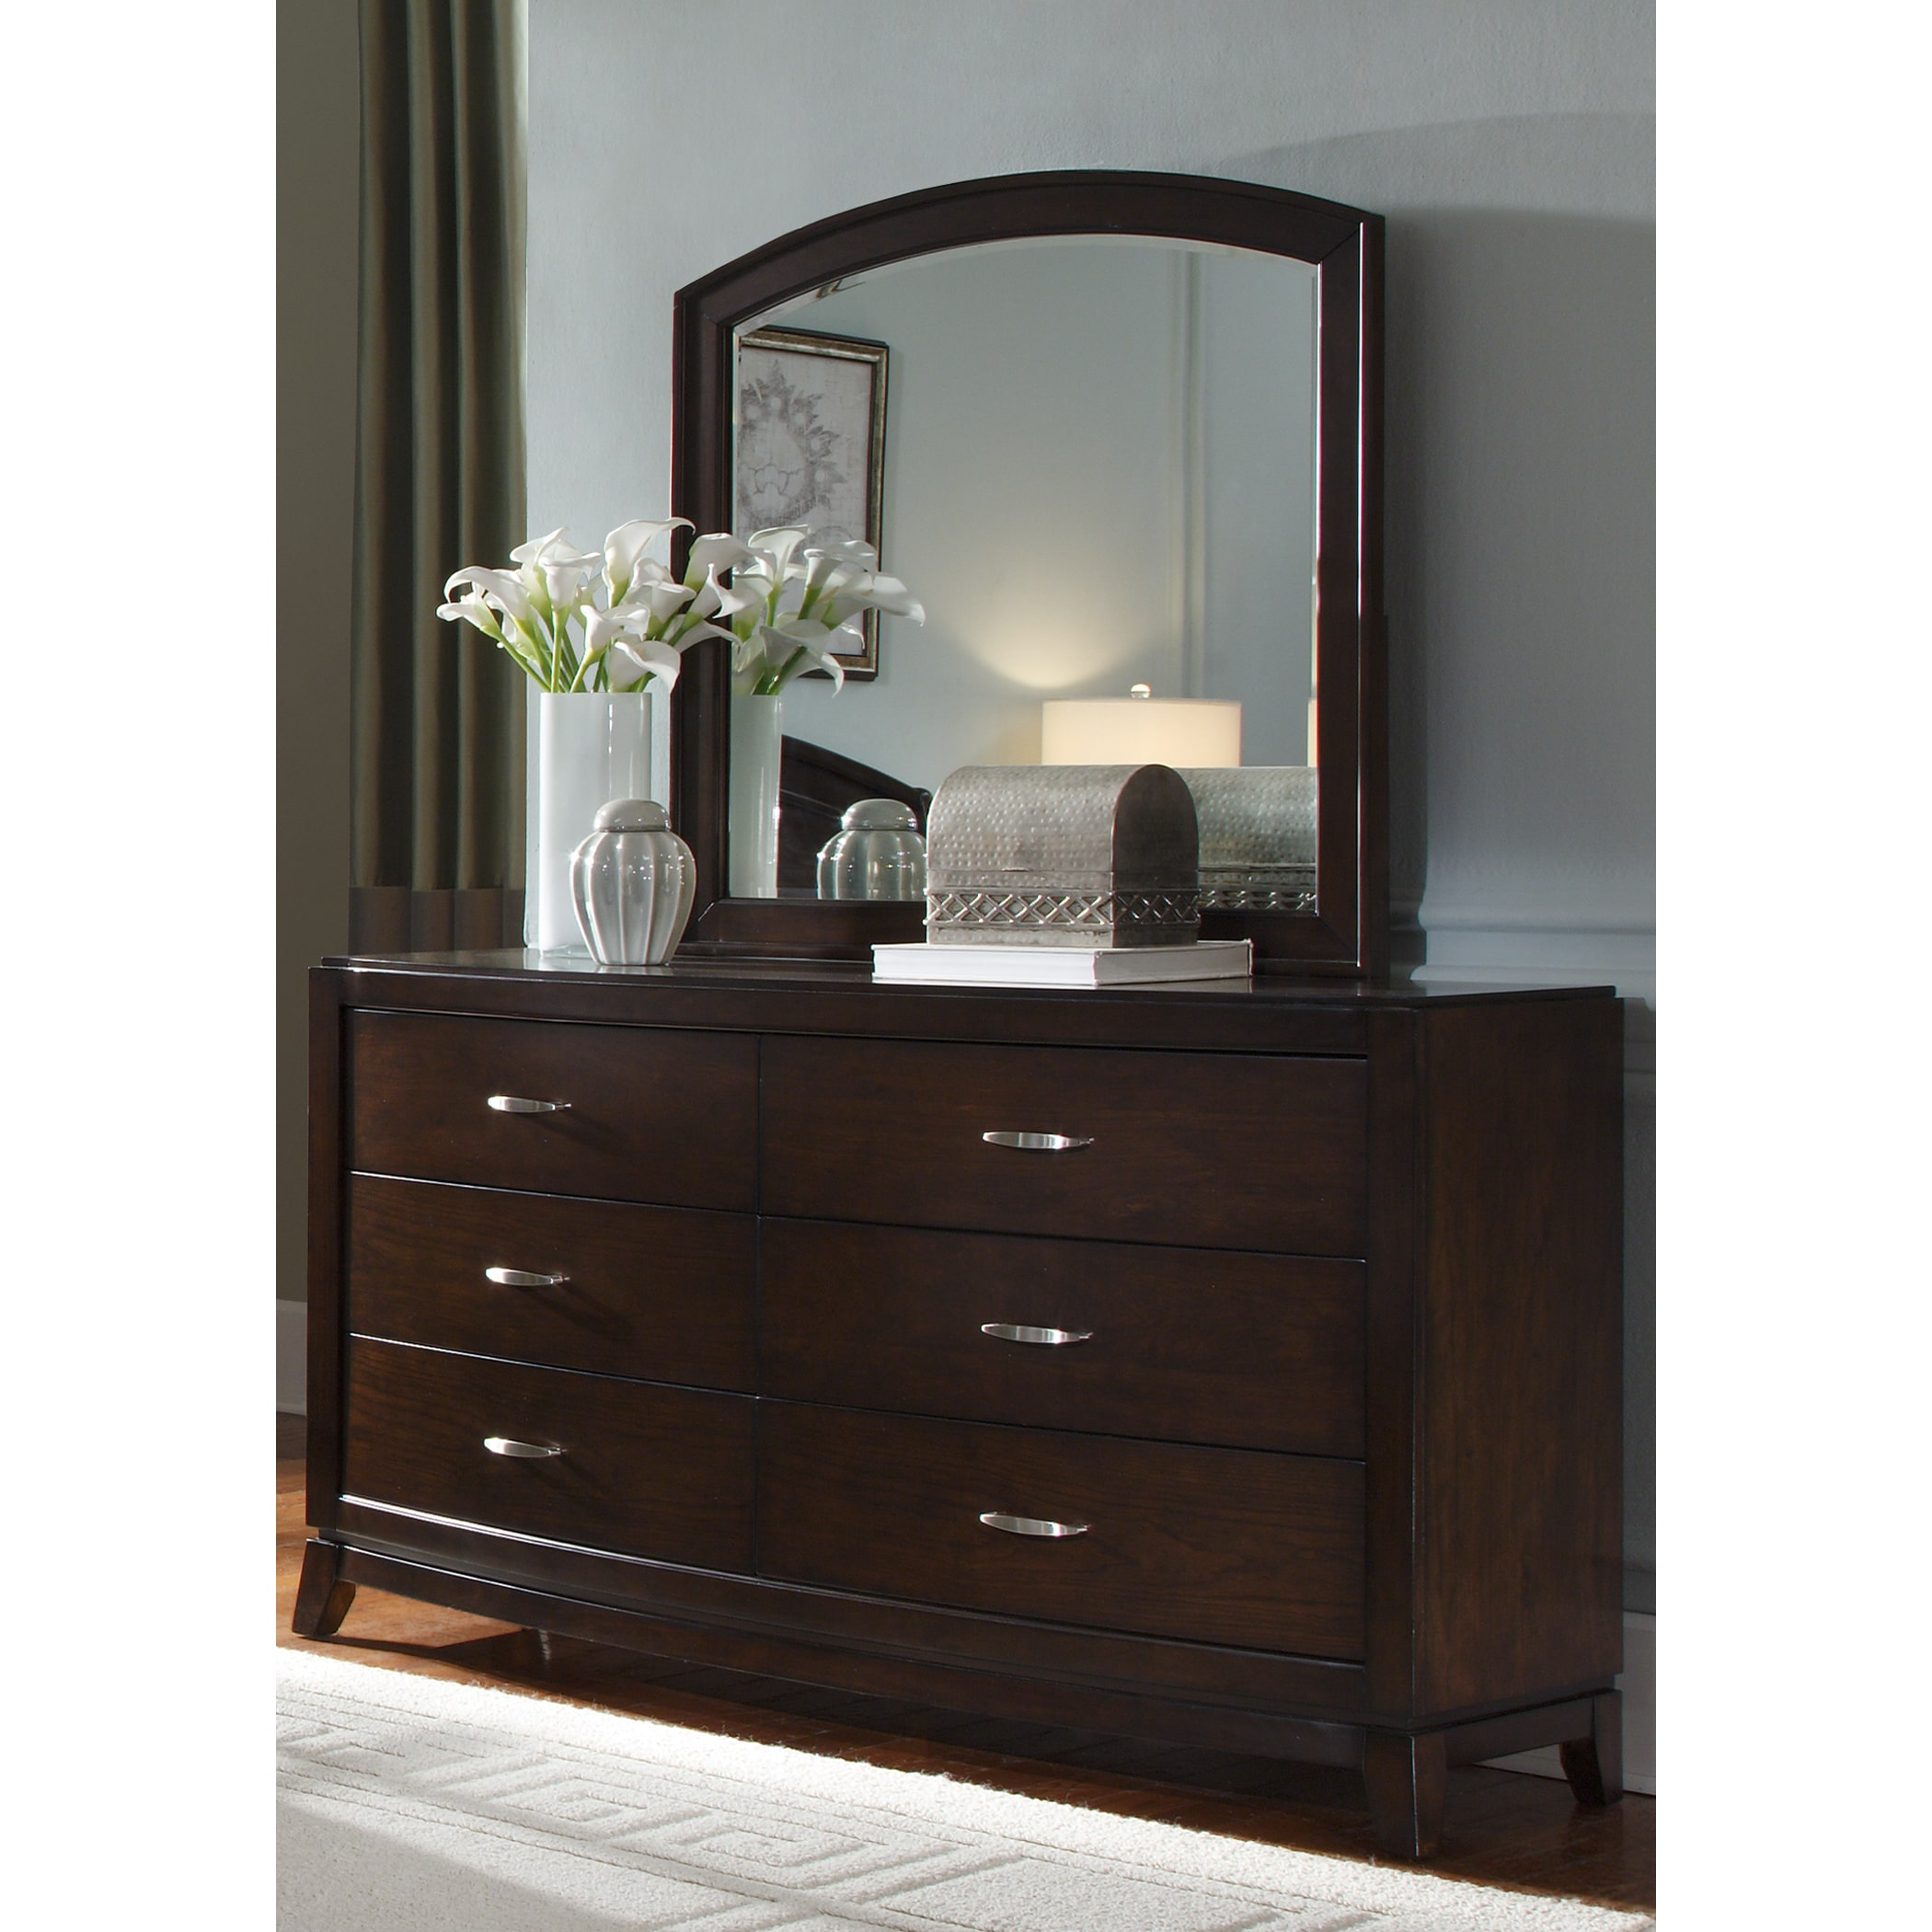 Liberty Avalon Dark Truffle 6-Drawer Dresser and MIrror Set